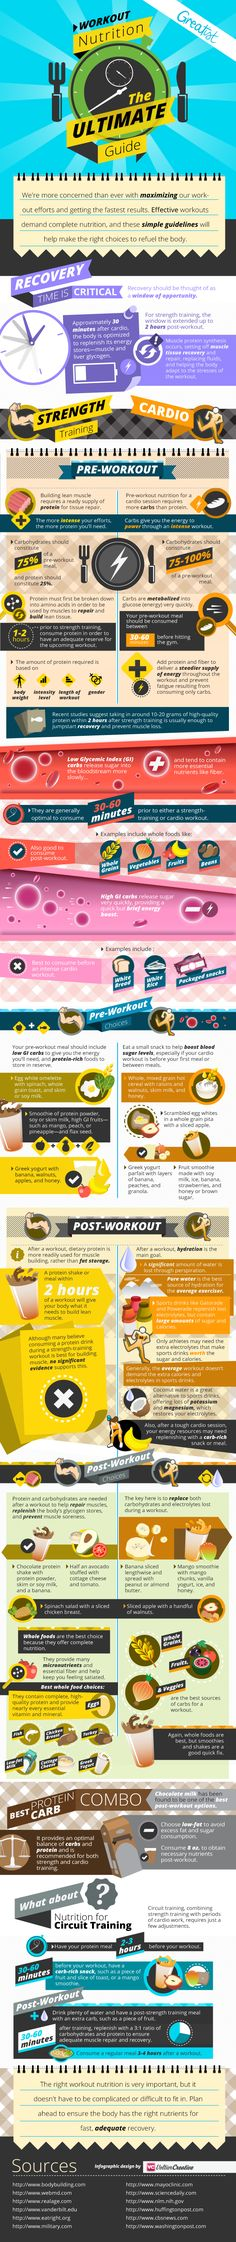 Awesome Guide to Work-Out Nutrition